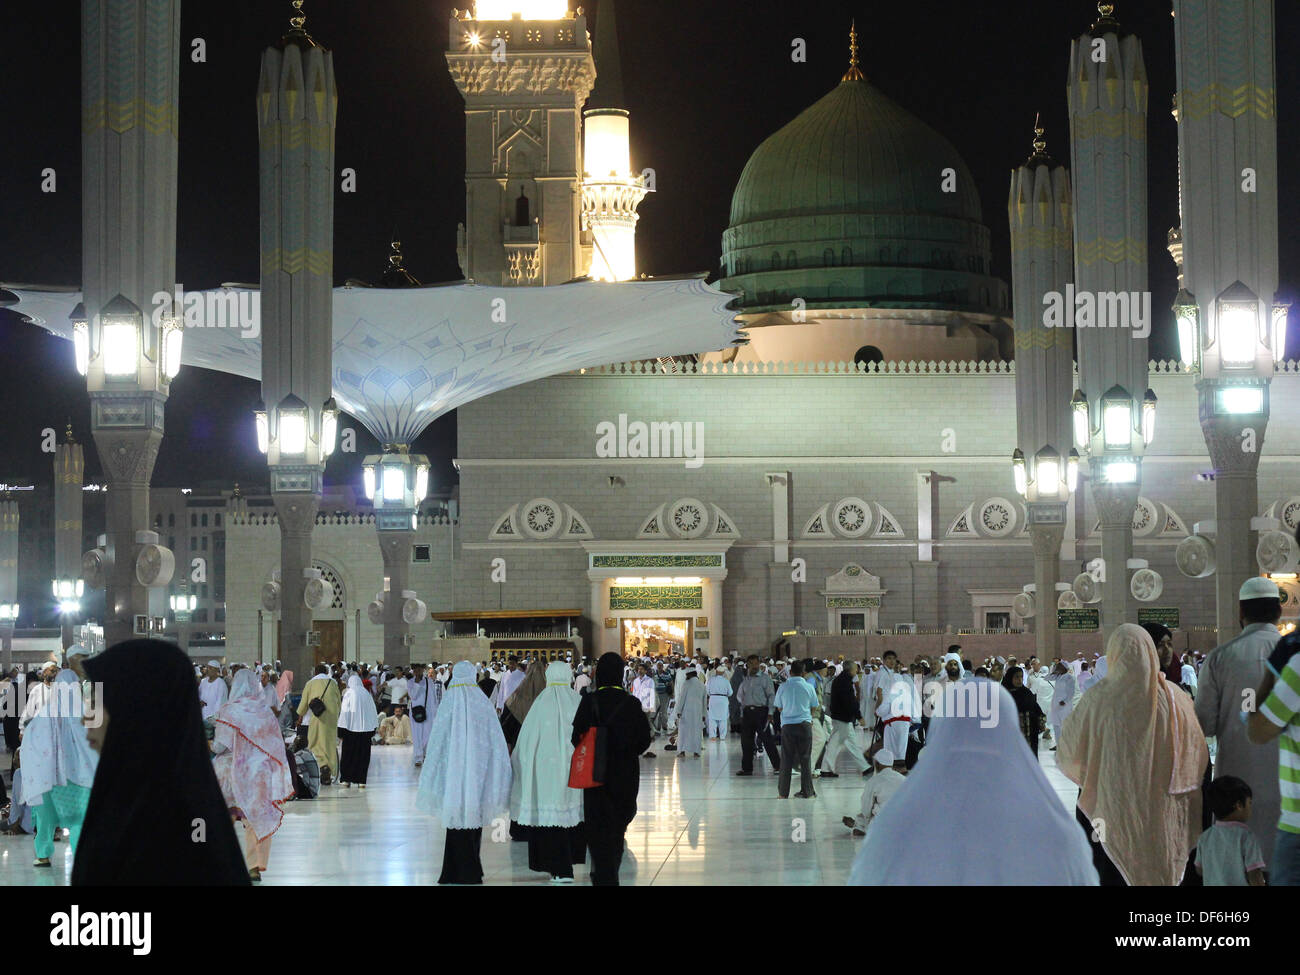 MEDINA, KINGDOM OF SAUDI ARABIA (KSA) - JUNE 6: Muslims walk outside Nabawi Mosque after dusk prayer June 6, 2013. - Stock Image